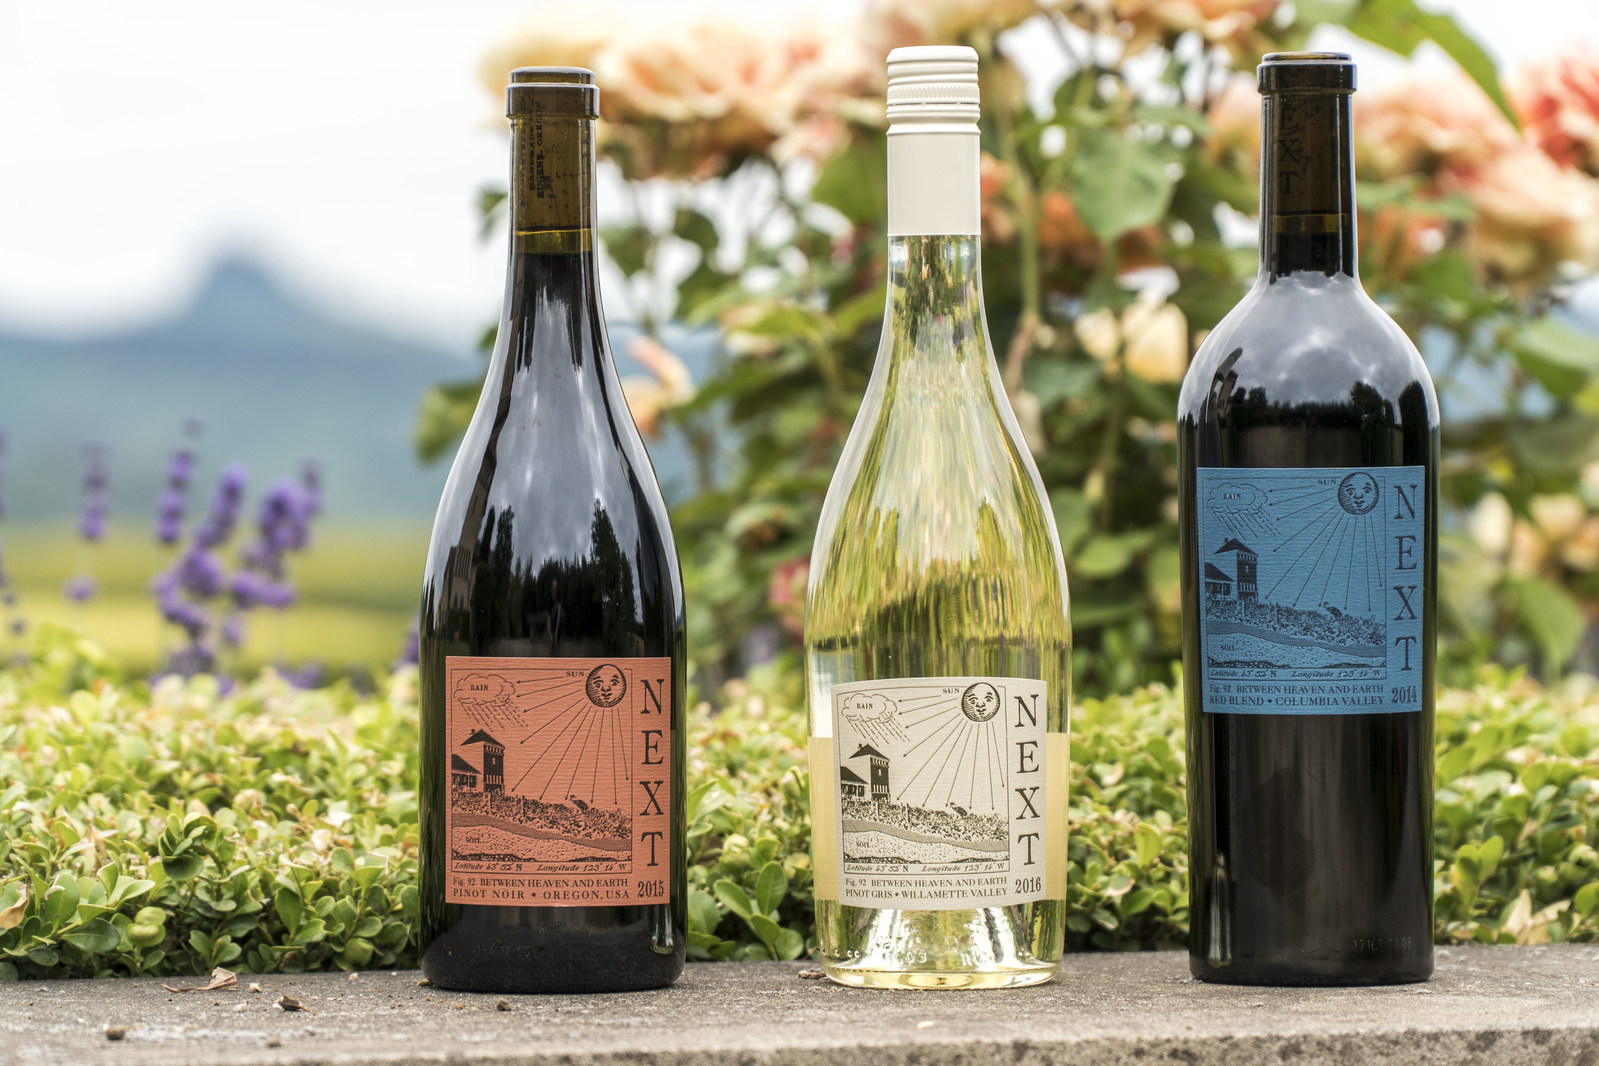 NEXT, a New Brand From a New Division of King Estate Winery